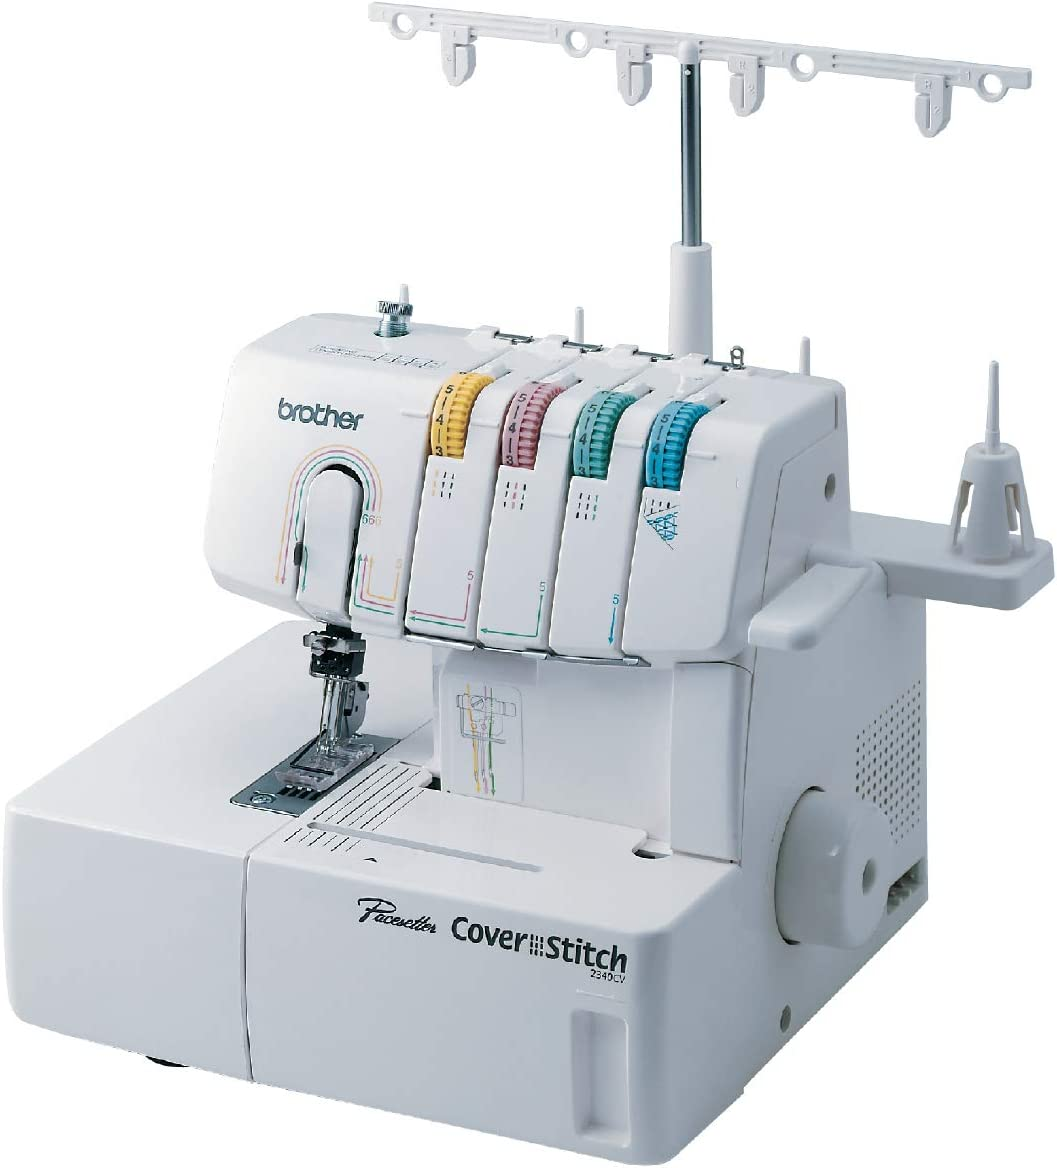 Coverstitch Sewing Machine-Brother 2340CV Cover Stitch – Best Overall Coverstitch Machine w/ Serger